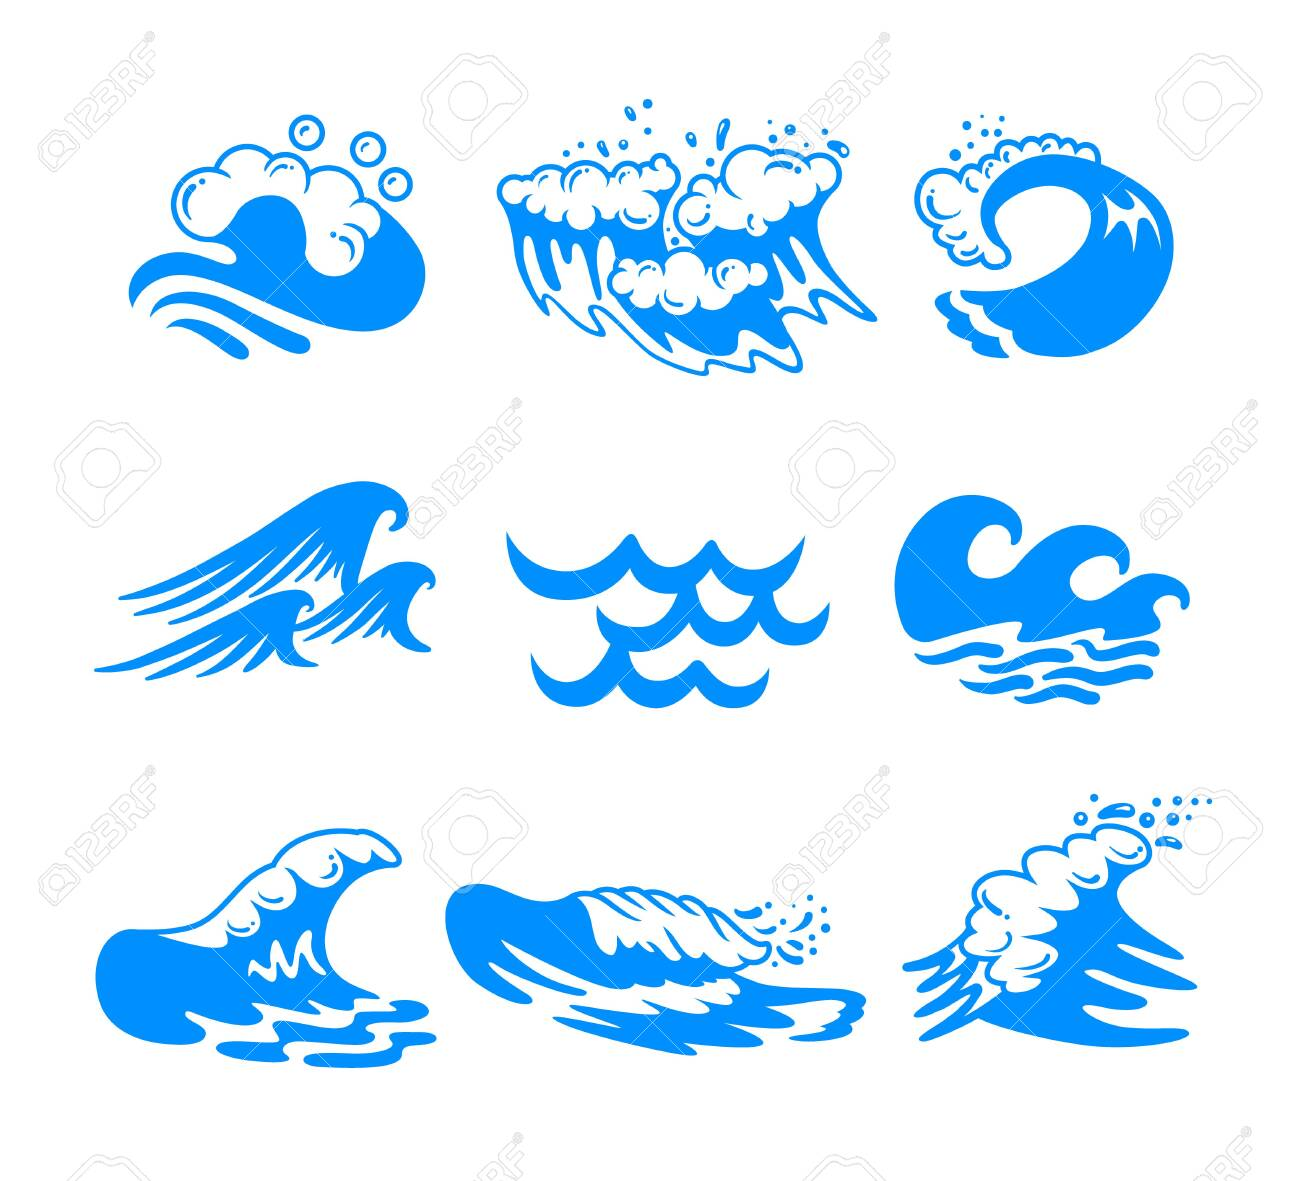 Set of Blue Water Sea or Ocean Waves and Splashing of Different Shapes Isolated on White Background. Minimalistic Icons, Labels or Signs for Advertising Promo Banner. Vector Illustration, Clip Art - 142812875